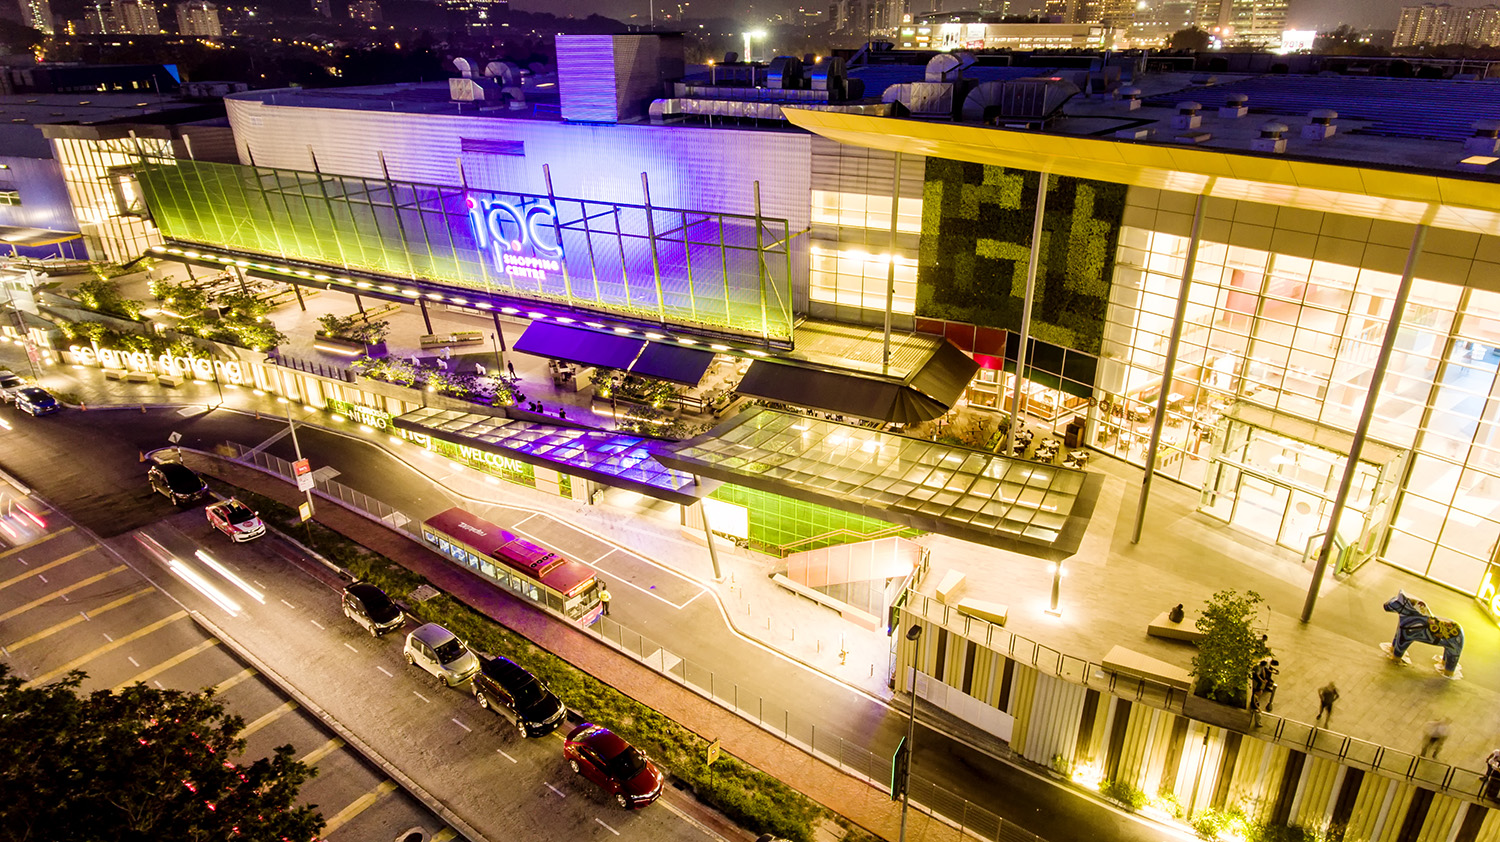 IPC Shopping Centre Offers 'So Much More' with Redevelopment